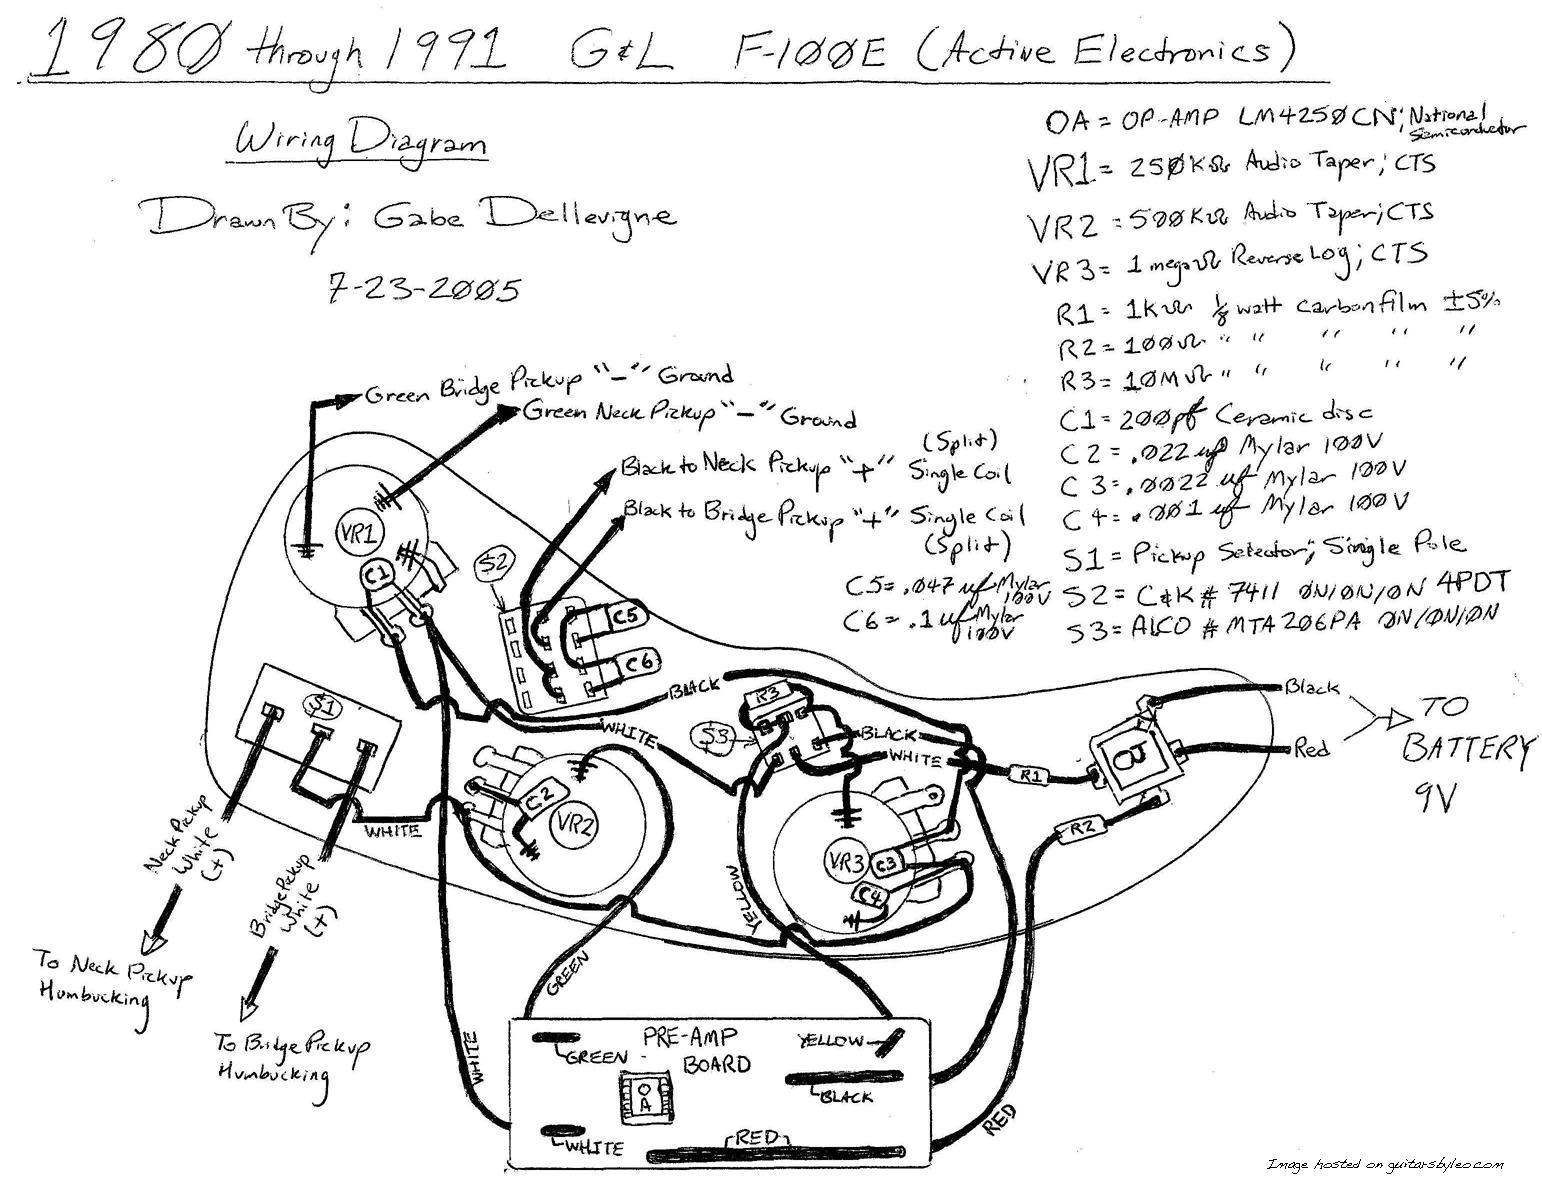 g l legacy wiring diagram images for submitting this hand drawn wiring diagram for the f 100e